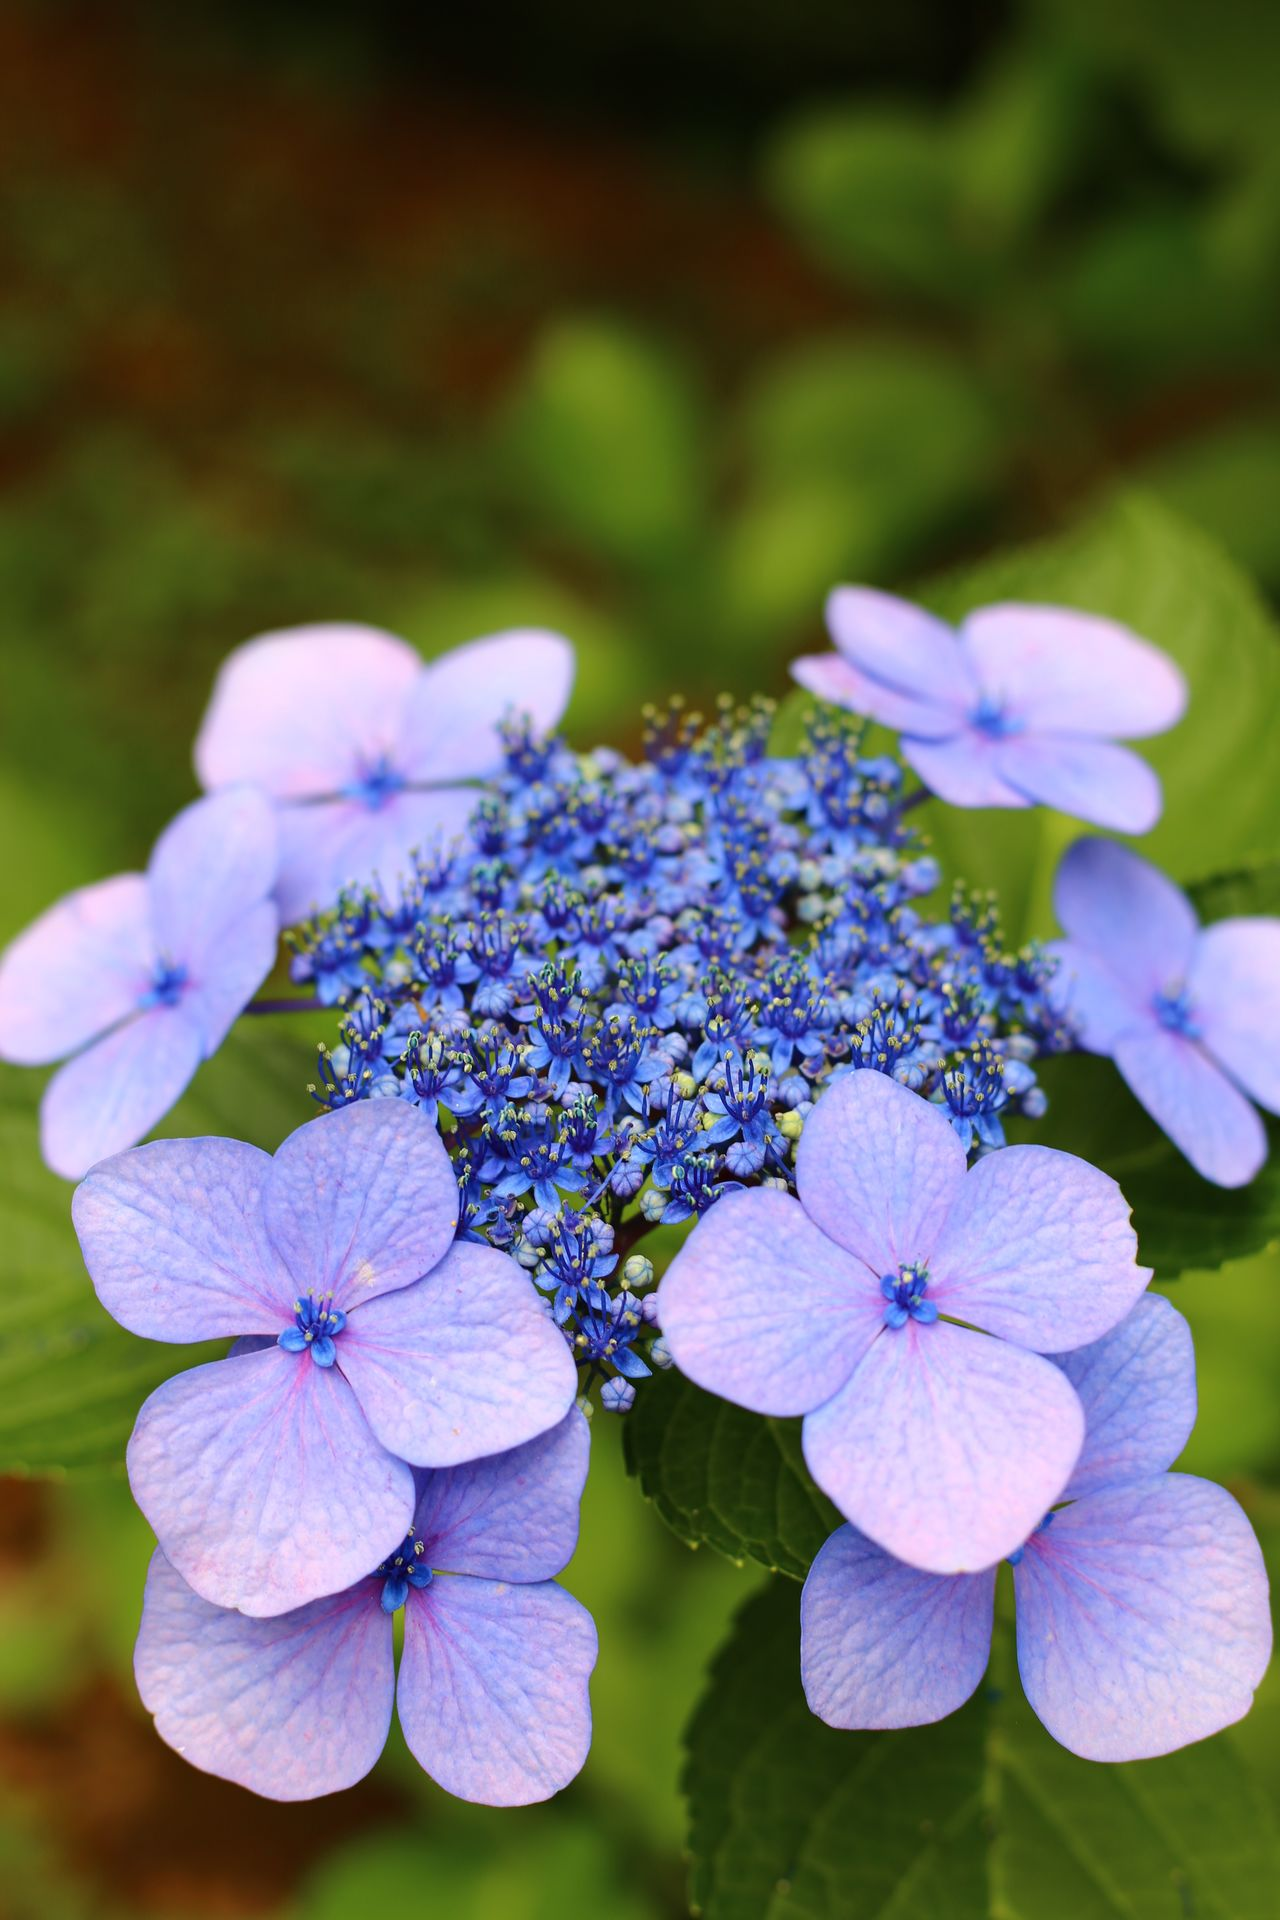 2015  Beauty In Nature Flower Flower Head Fragility Growth Hydrangea Imperial Palace Japan Nature Outdoors Park Petal Plant Purple Tokyo 紫陽花 花